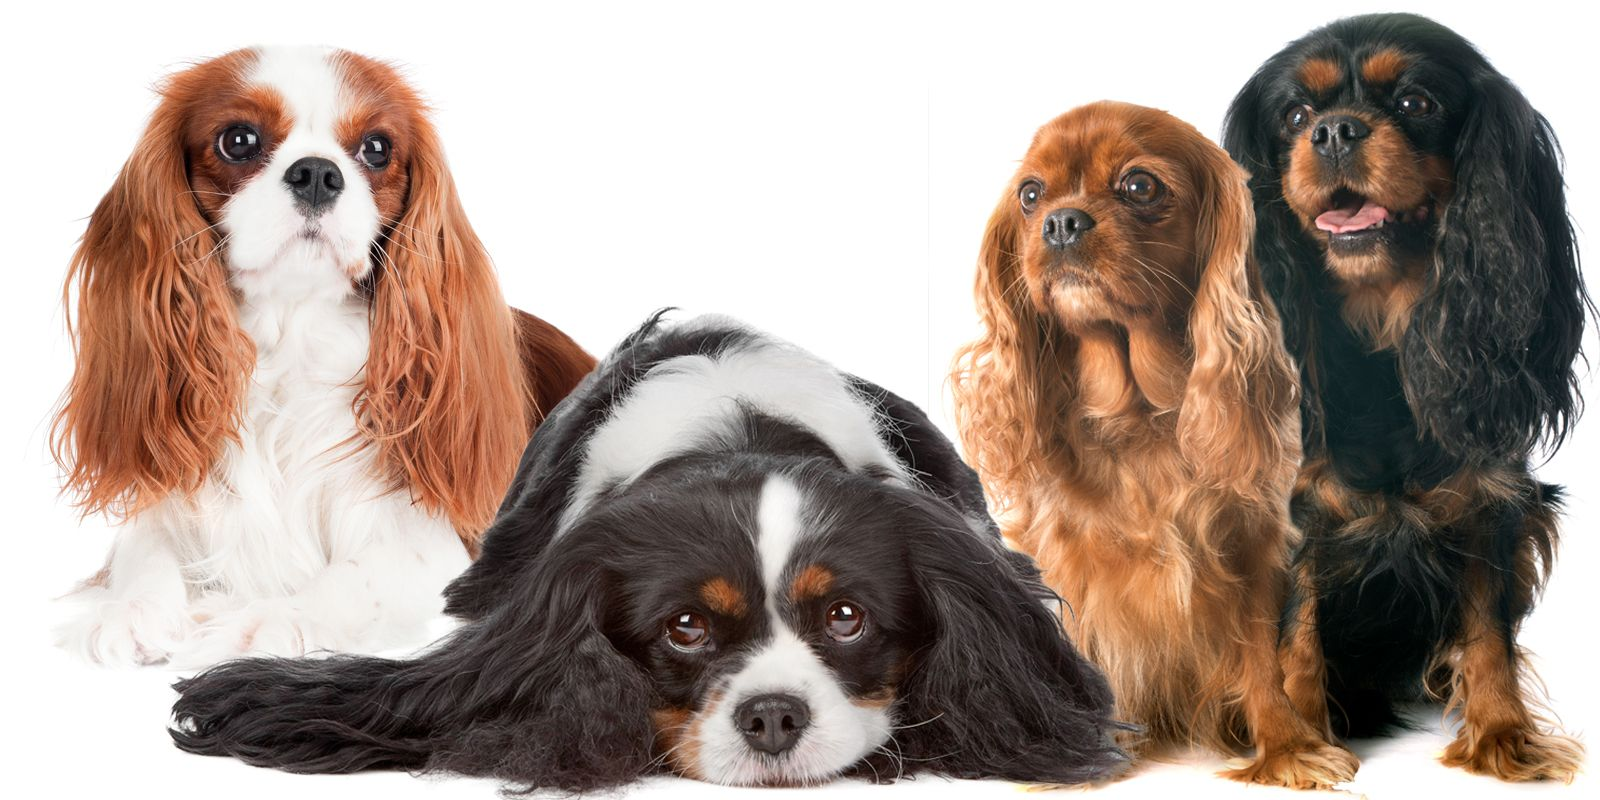 Cavalier King Charles Spaniel Nose Butter King Charles Spaniel Cavalier King Charles Cavalier King Charles Spaniel